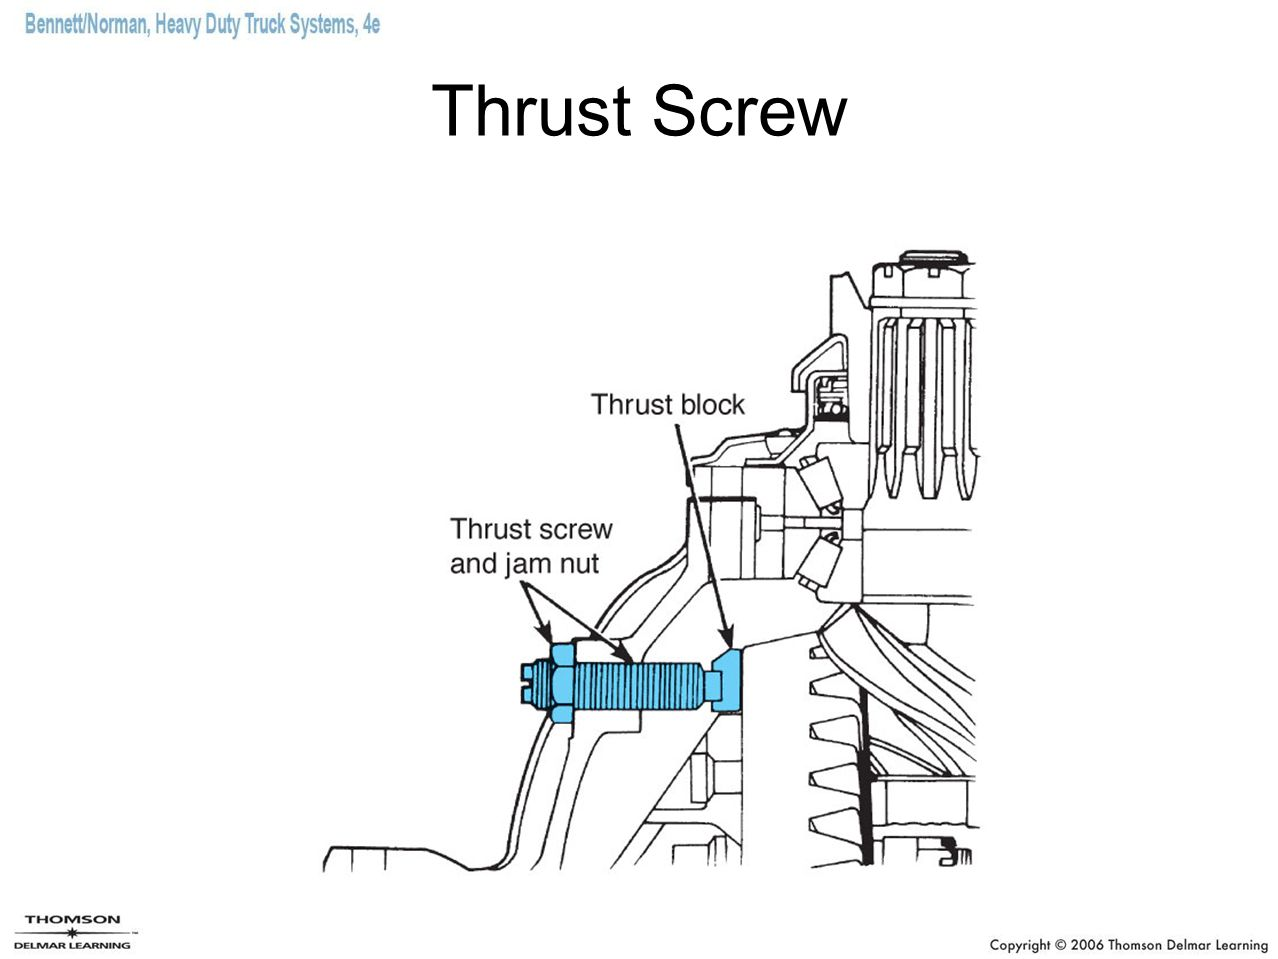 Thrust Screw